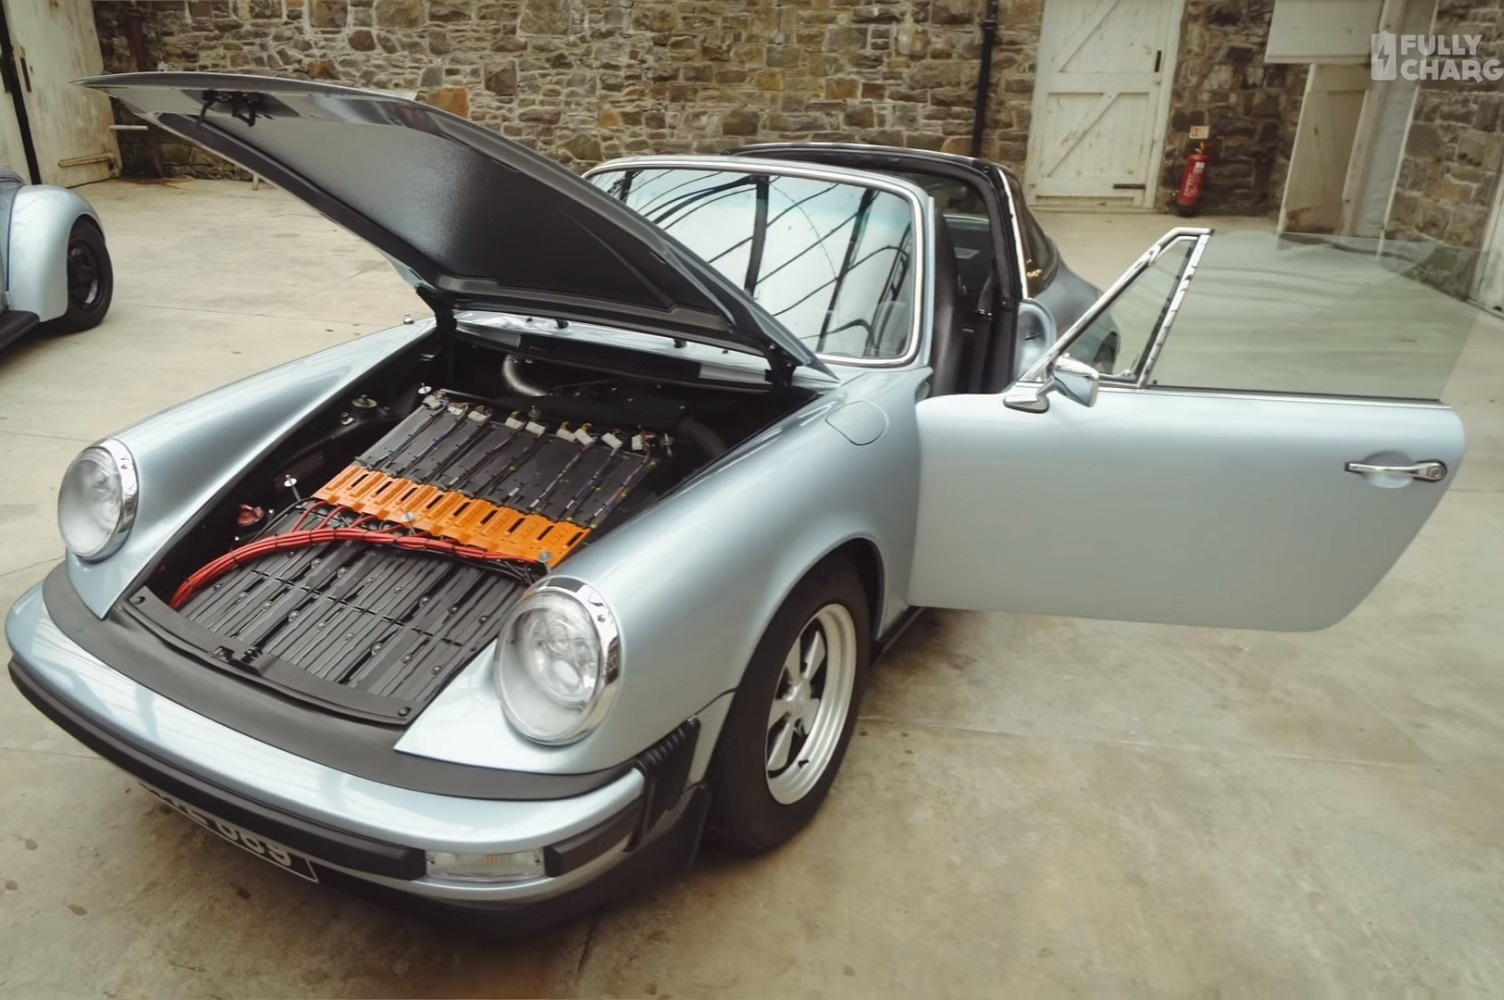 A Tesla Battery Pack Mutes This Classic Porsche S Flat Six Engine